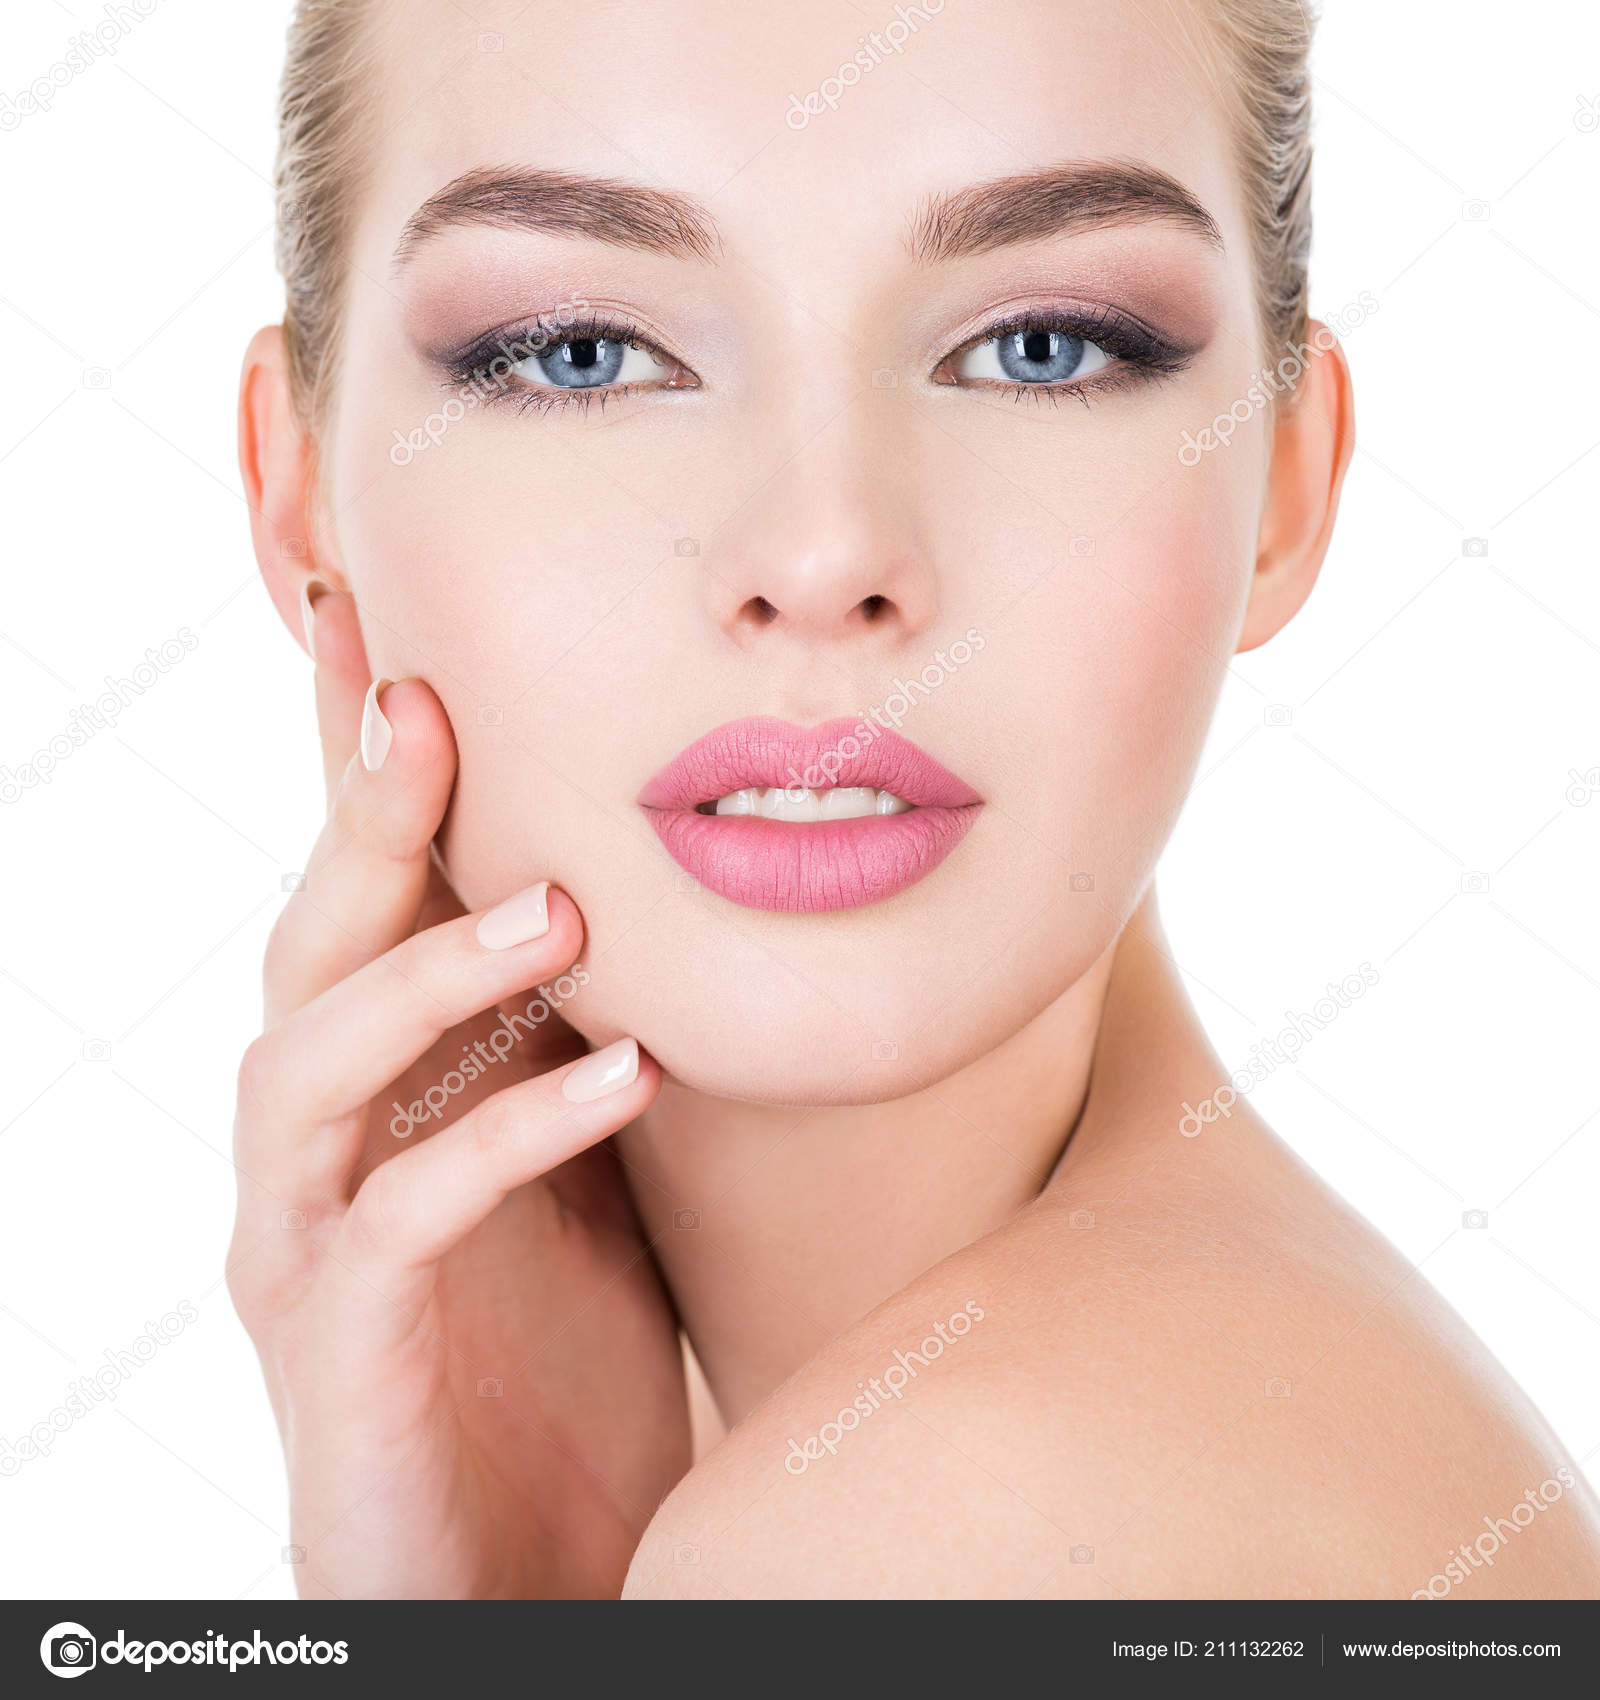 Young Beautiful Woman Healthy Face Beauty Treatment Concept Skin Care Stock Photo Image By C Valuavitaly 211132262